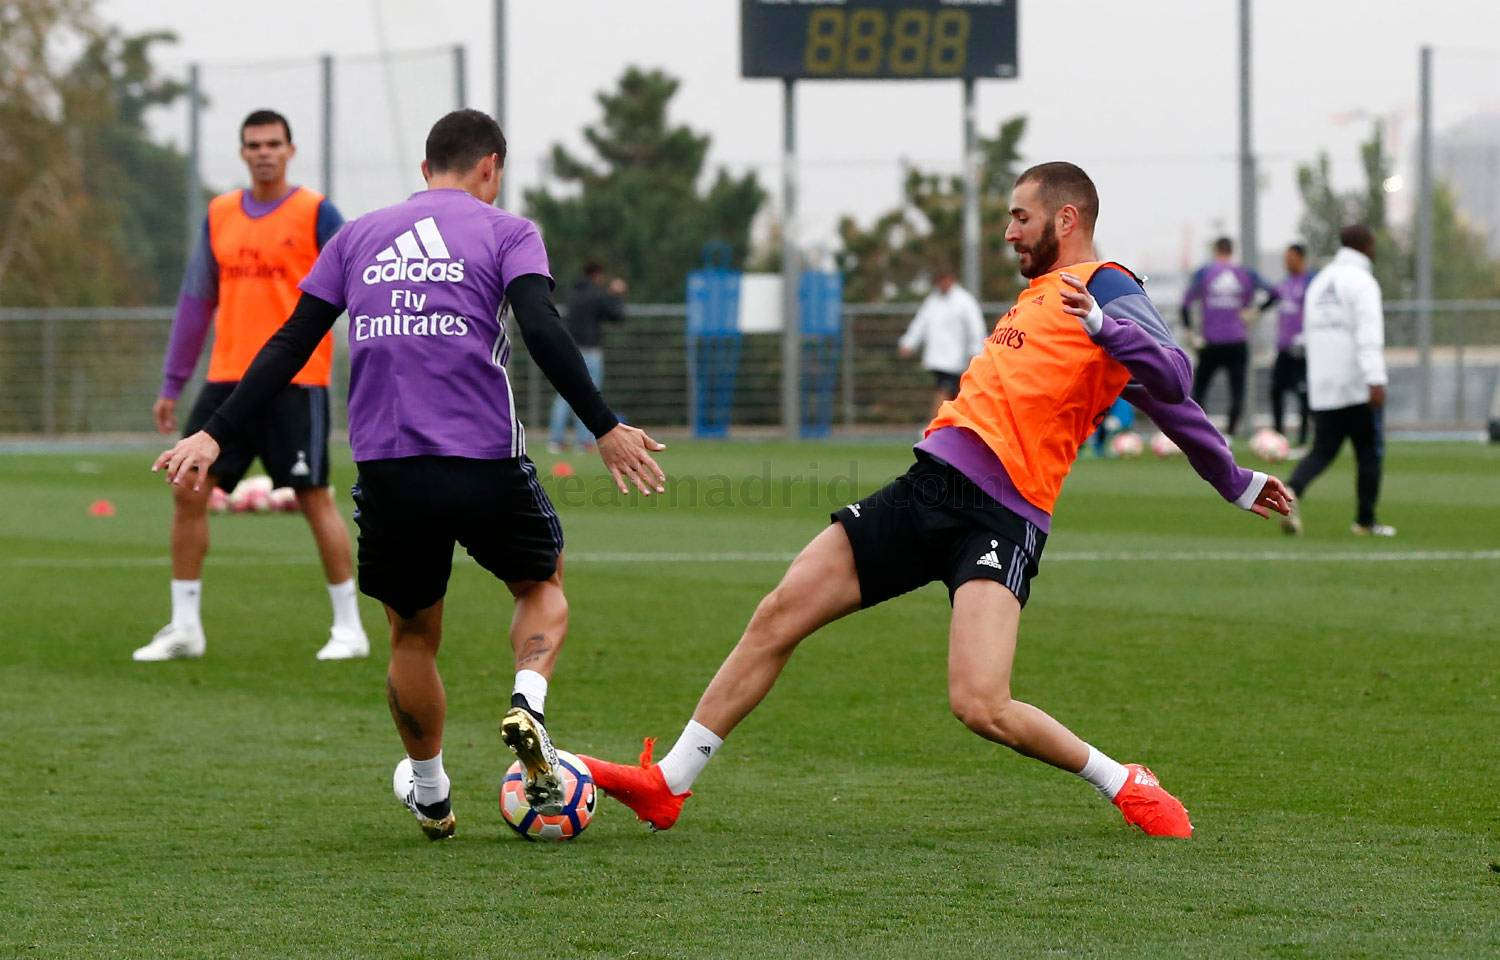 Real Madrid - Entrenamiento del Real Madrid - 21-10-2016